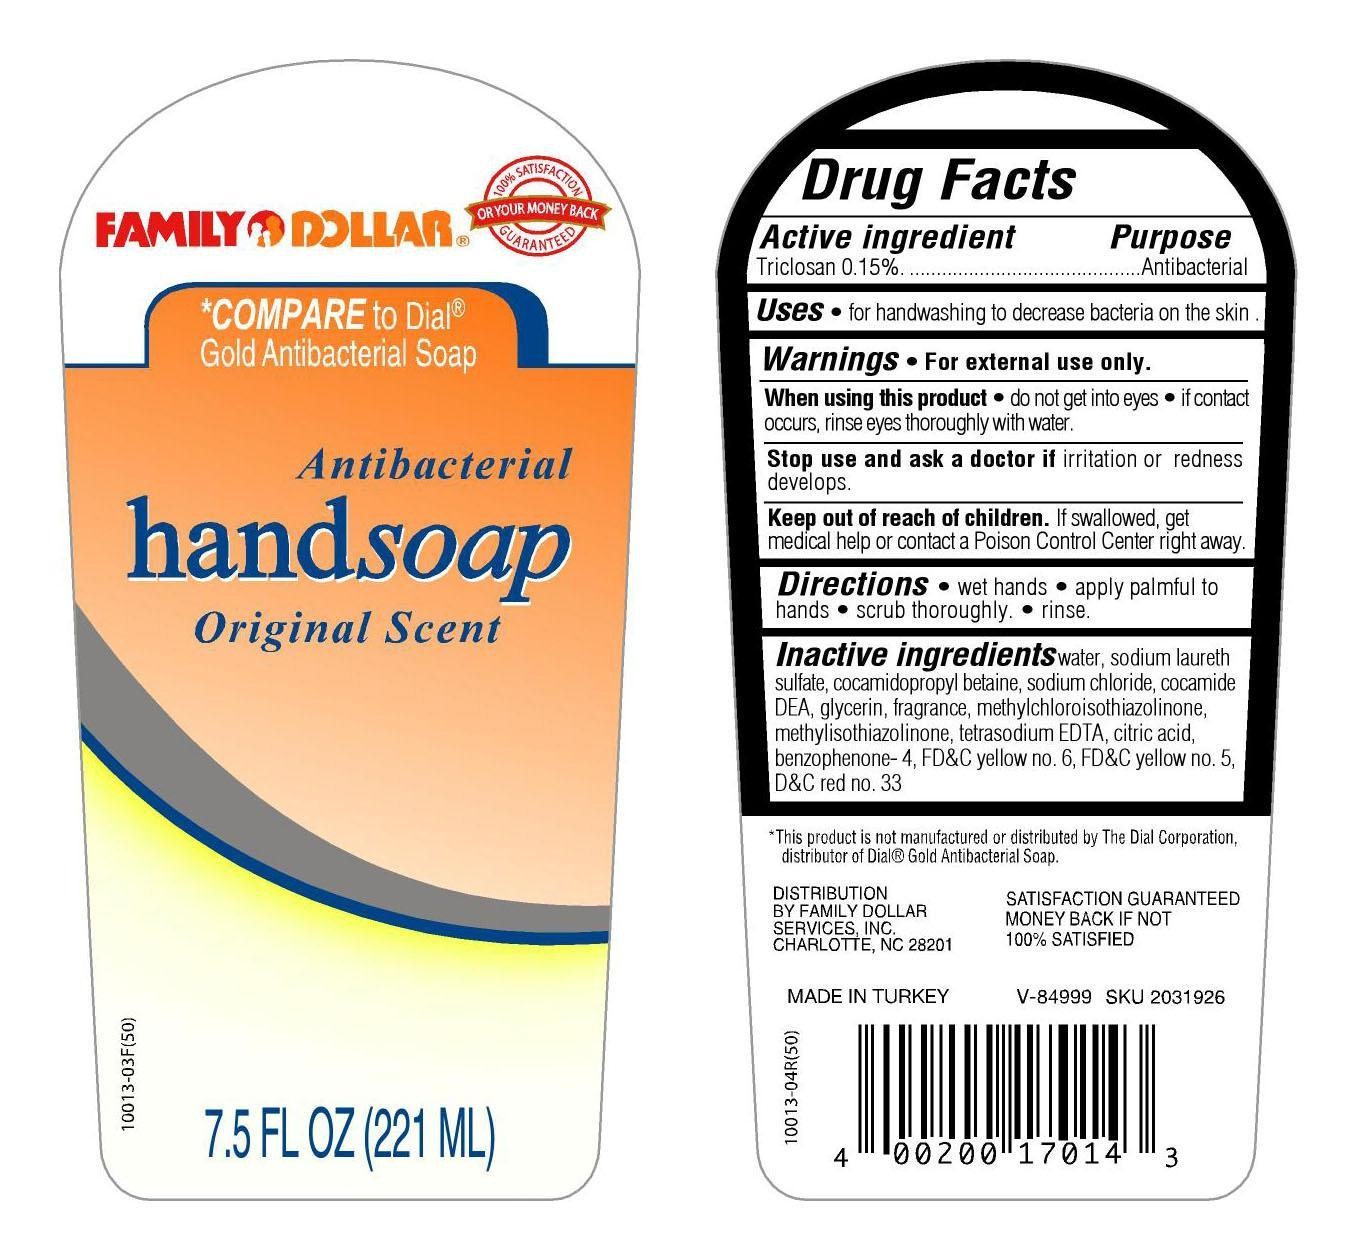 Family Dollar Antibacterial (Triclosan) Soap [Family Dollar Services Inc.]